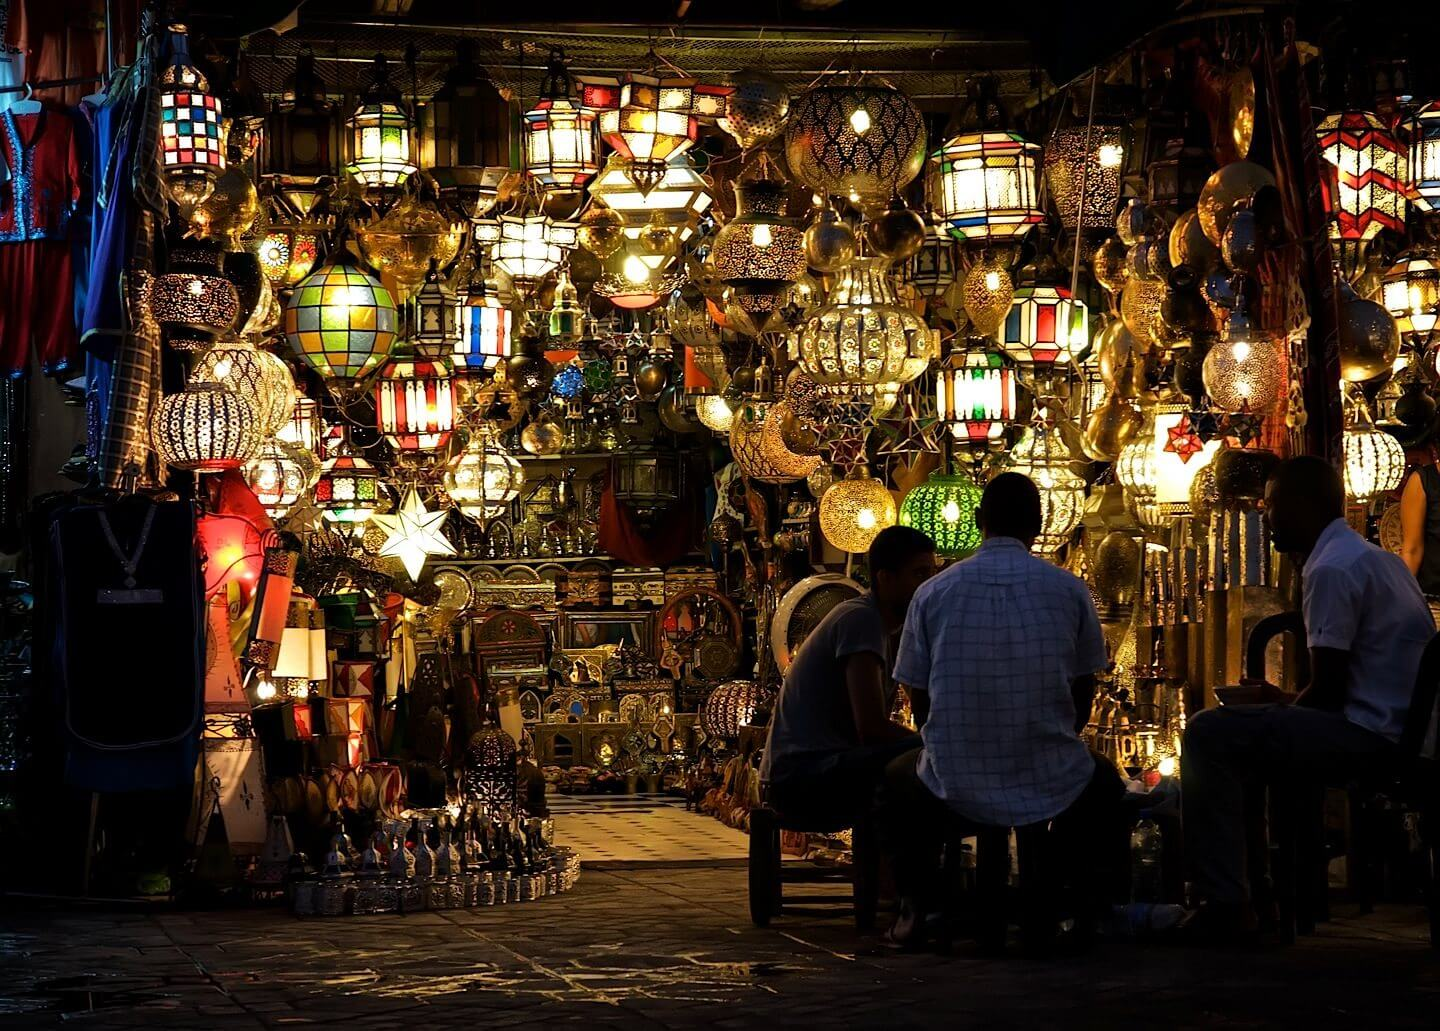 Night shot of a store selling traditional Moroccan lamps